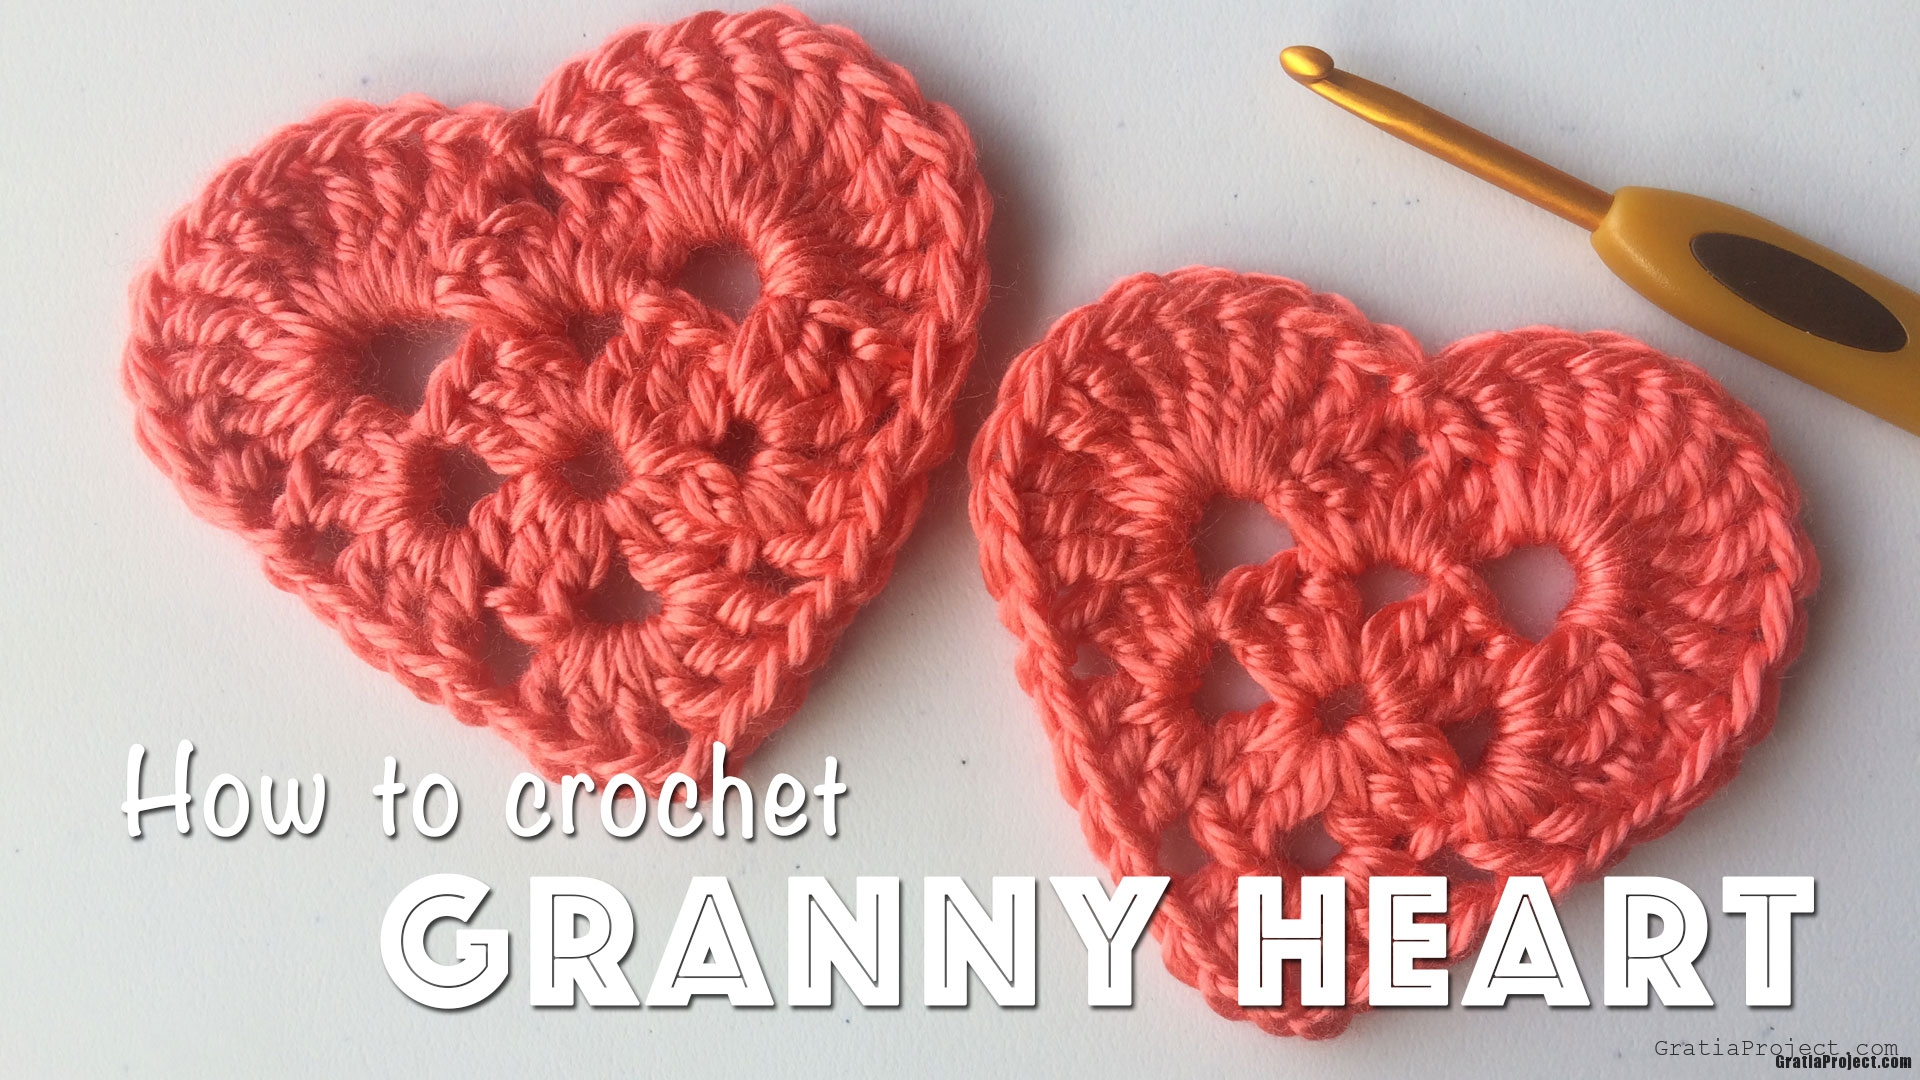 how-to-crochet-granny-heart